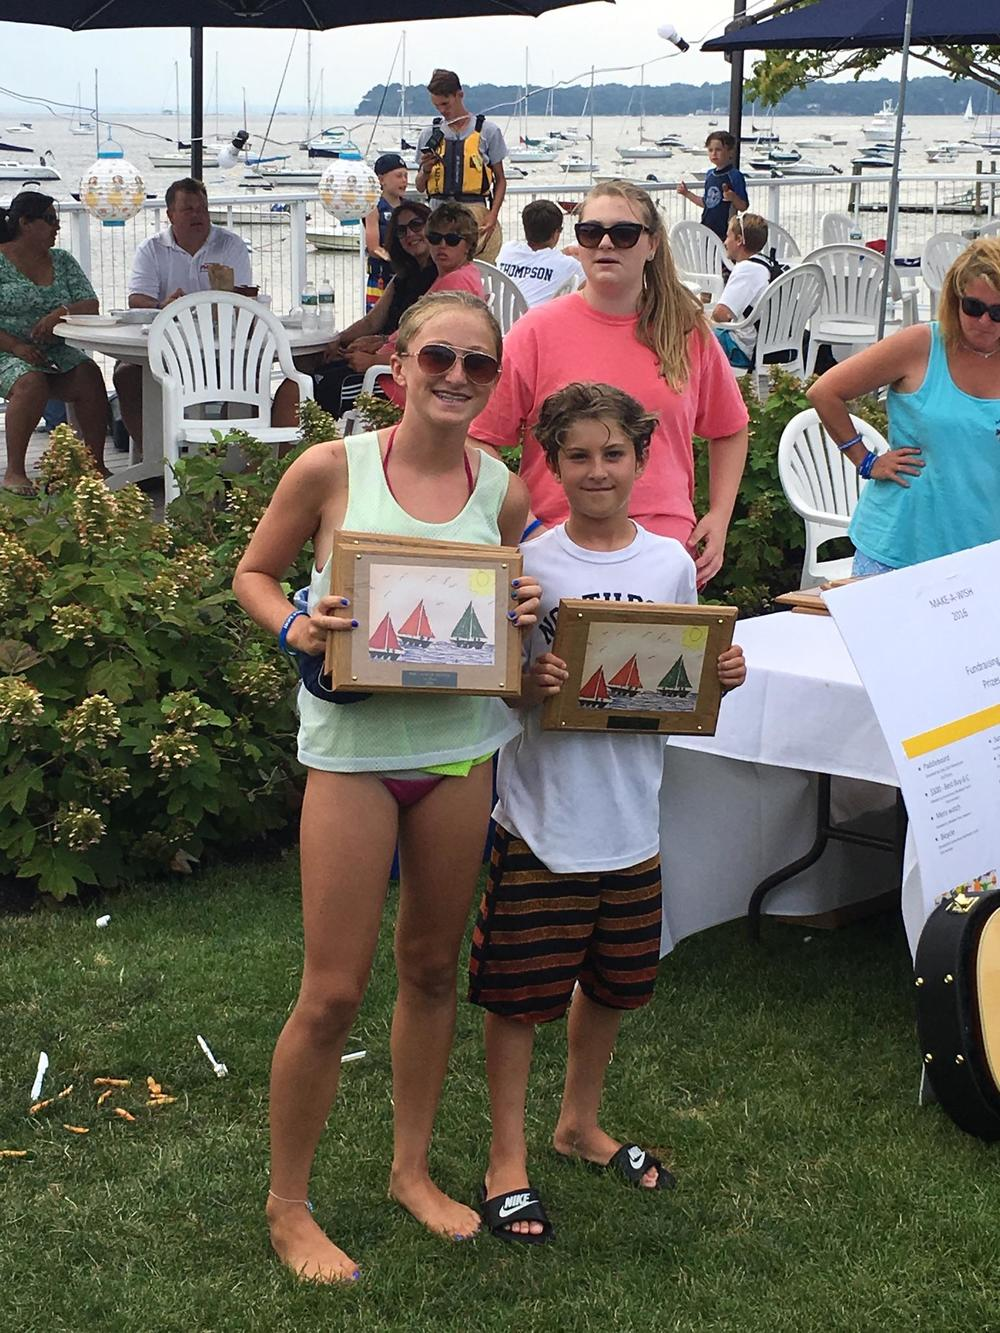 Maggie and Jonathon Kiernan of the Northport Yacht Club snagged first place in the Pixel class race. Maggie and Jonathon Kiernan of the Northport Yacht Club snagged first place in the Pixel class race.